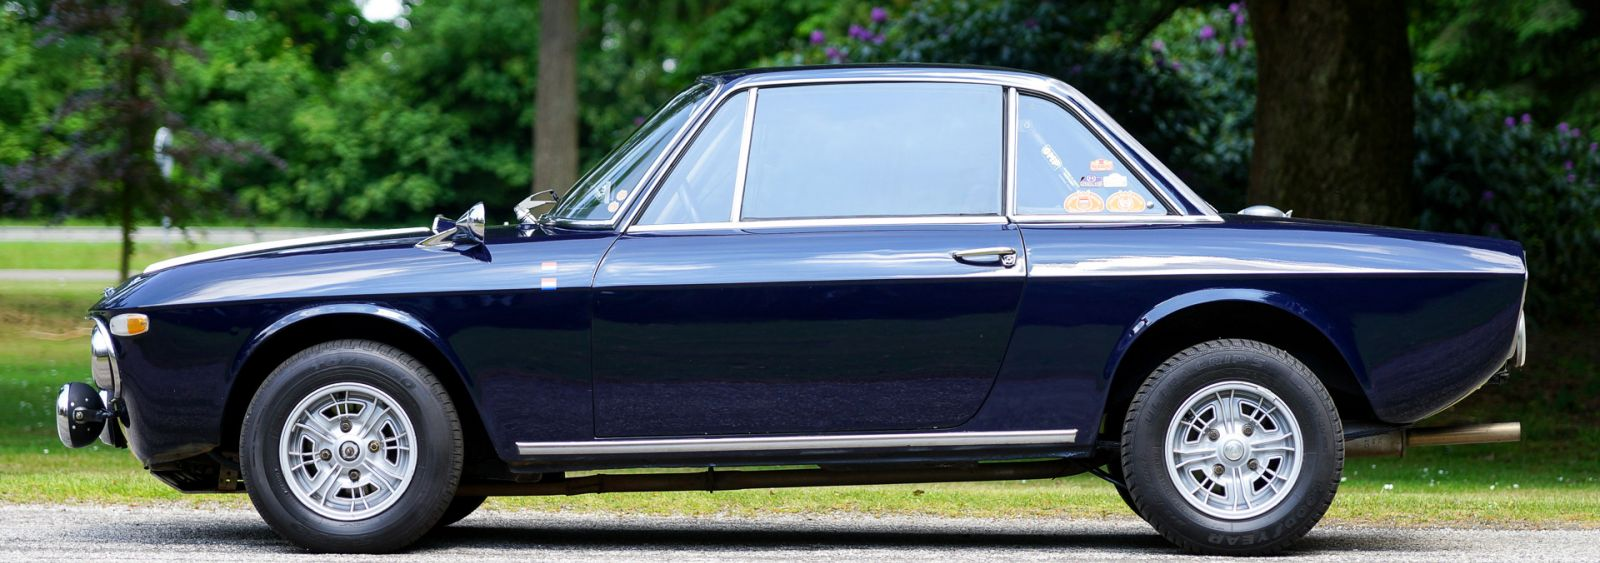 lancia fulvia 1 3 coupe 1967 welcome to classicargarage rh classicargarage com Lancia Stratos Lancia Flaminia